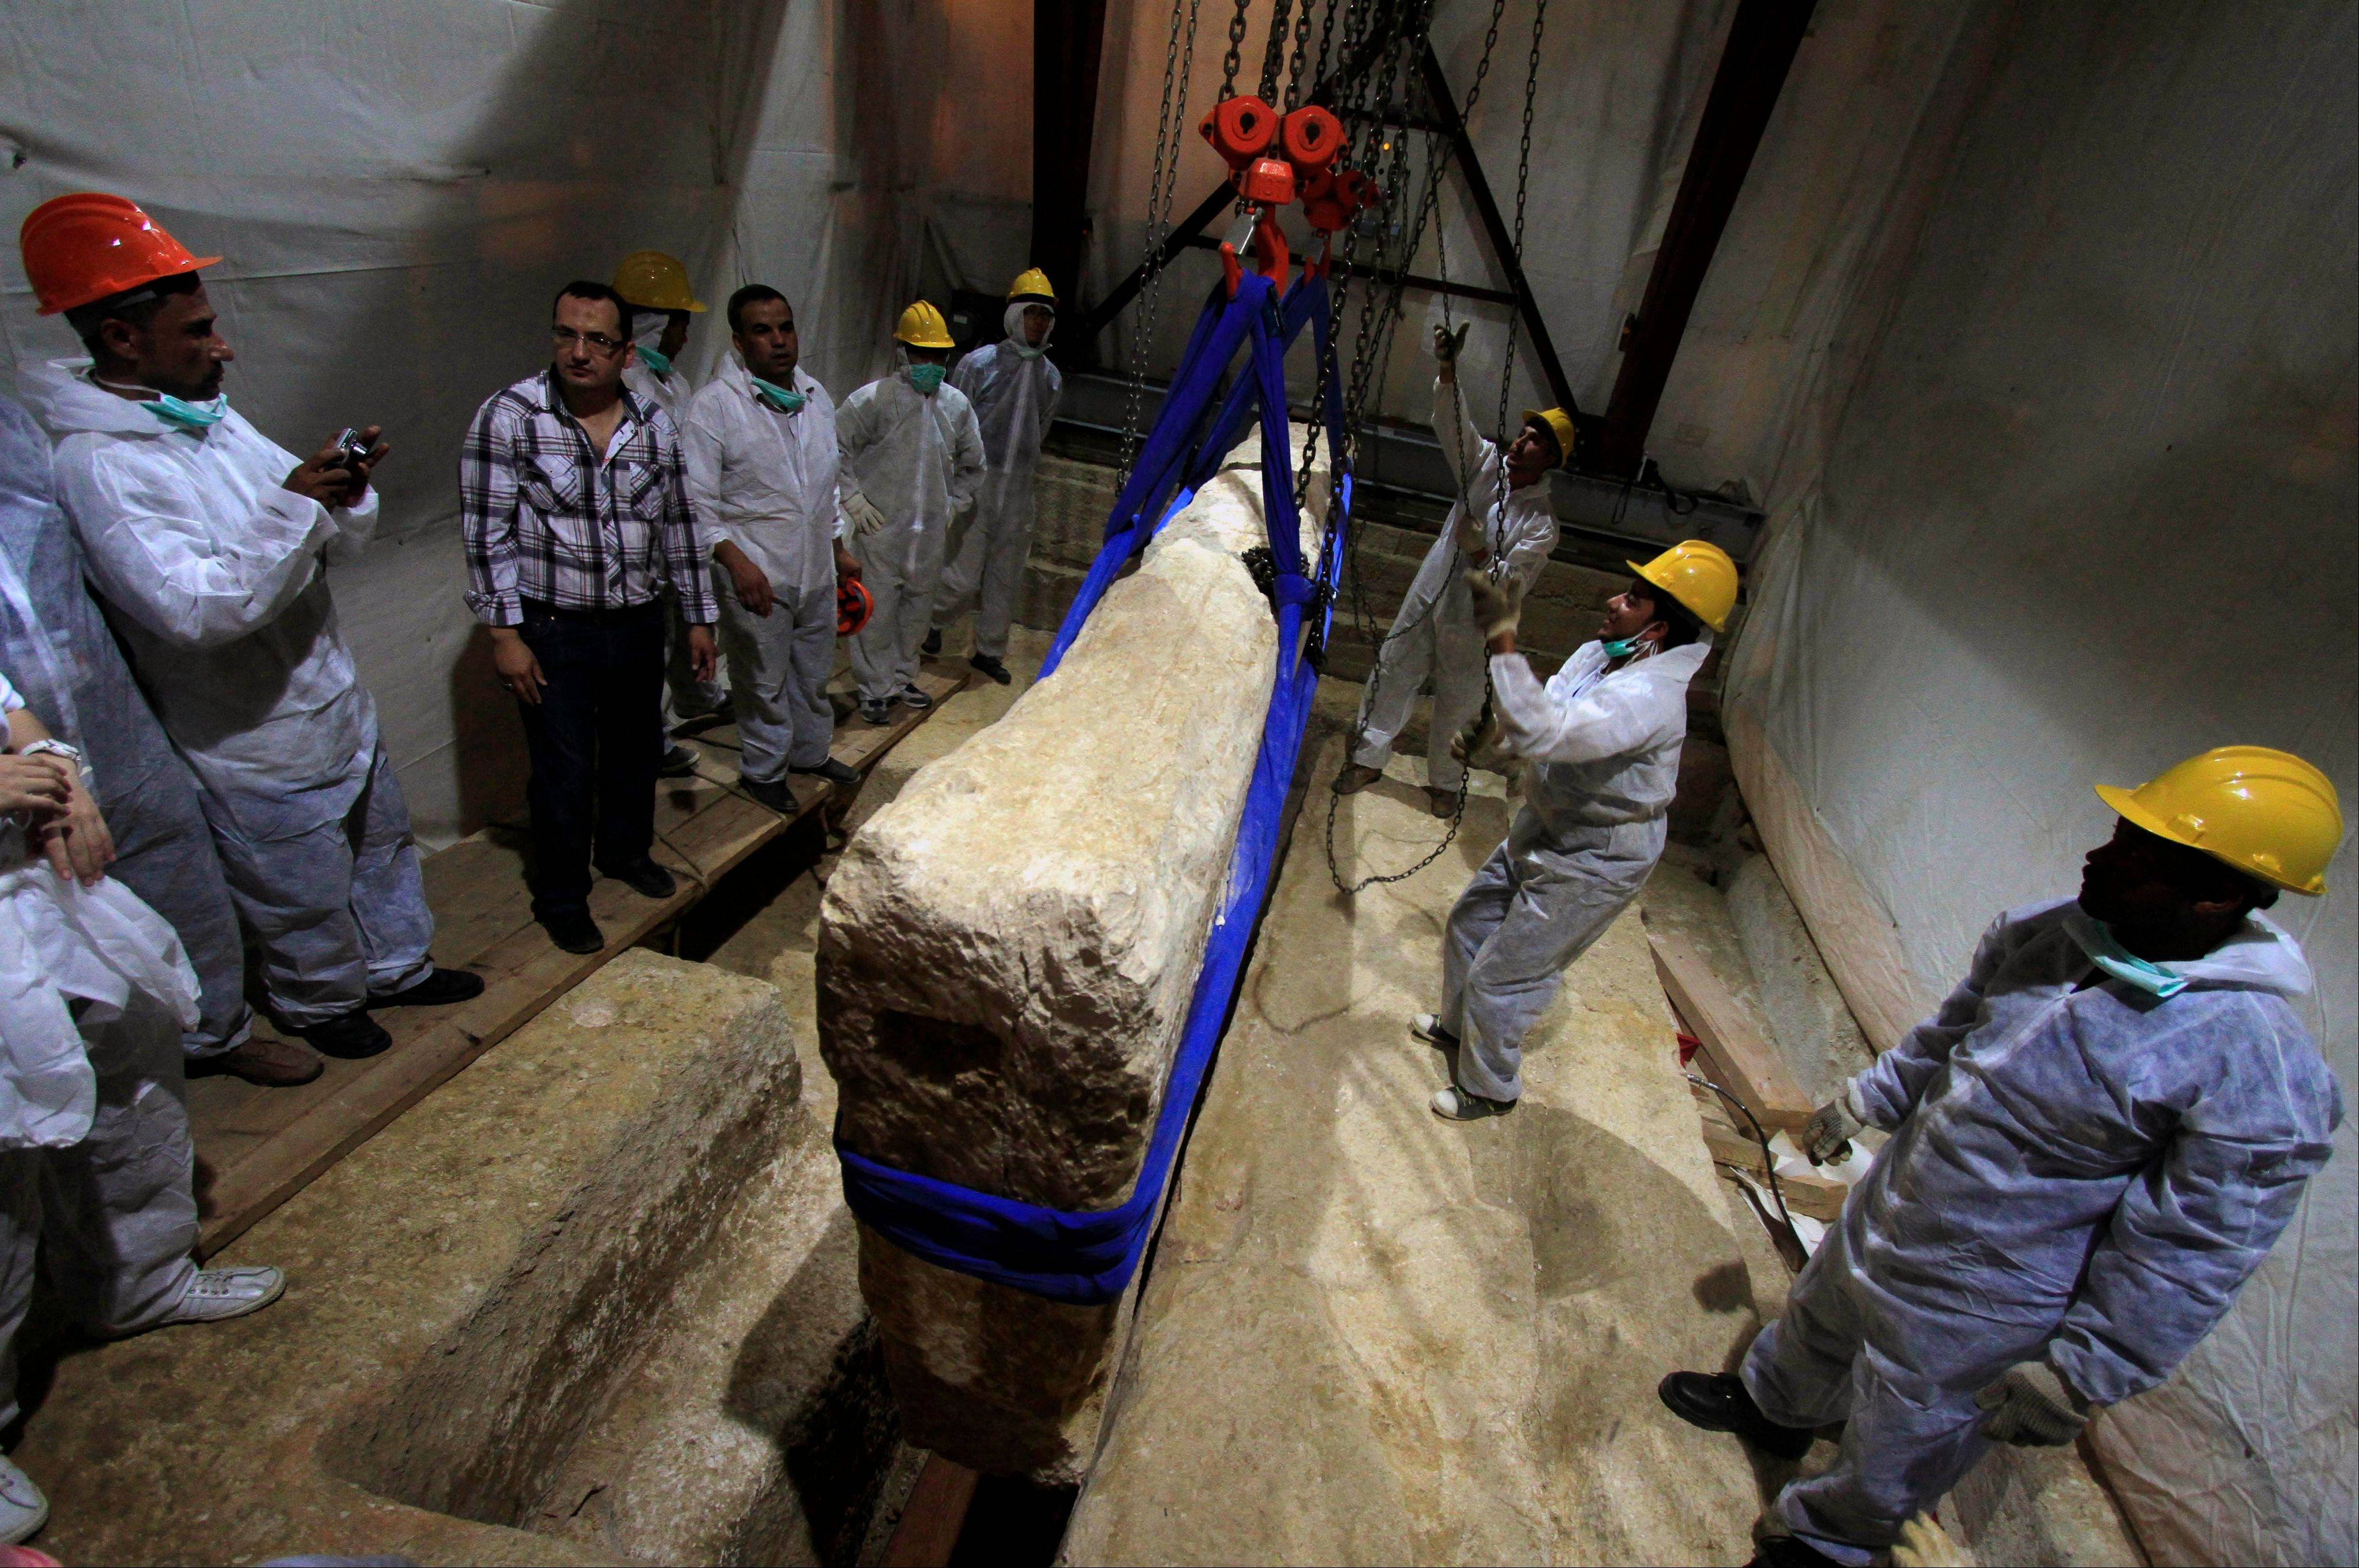 In this Thursday, June 23, 2011 file photo, an Egyptian and Japanese team of scientists use a pulley system to lift the first of 41 16-ton limestone slabs to reveal fragments of the ancient ship of King Khufu next to the Great Pyramid of Giza, Egypt. Archaeologists began a second-phase of restoration work on a 4,500-year-old wooden boat found next to the Great Pyramid of Giza, one of Egypt's main tourist attractions.